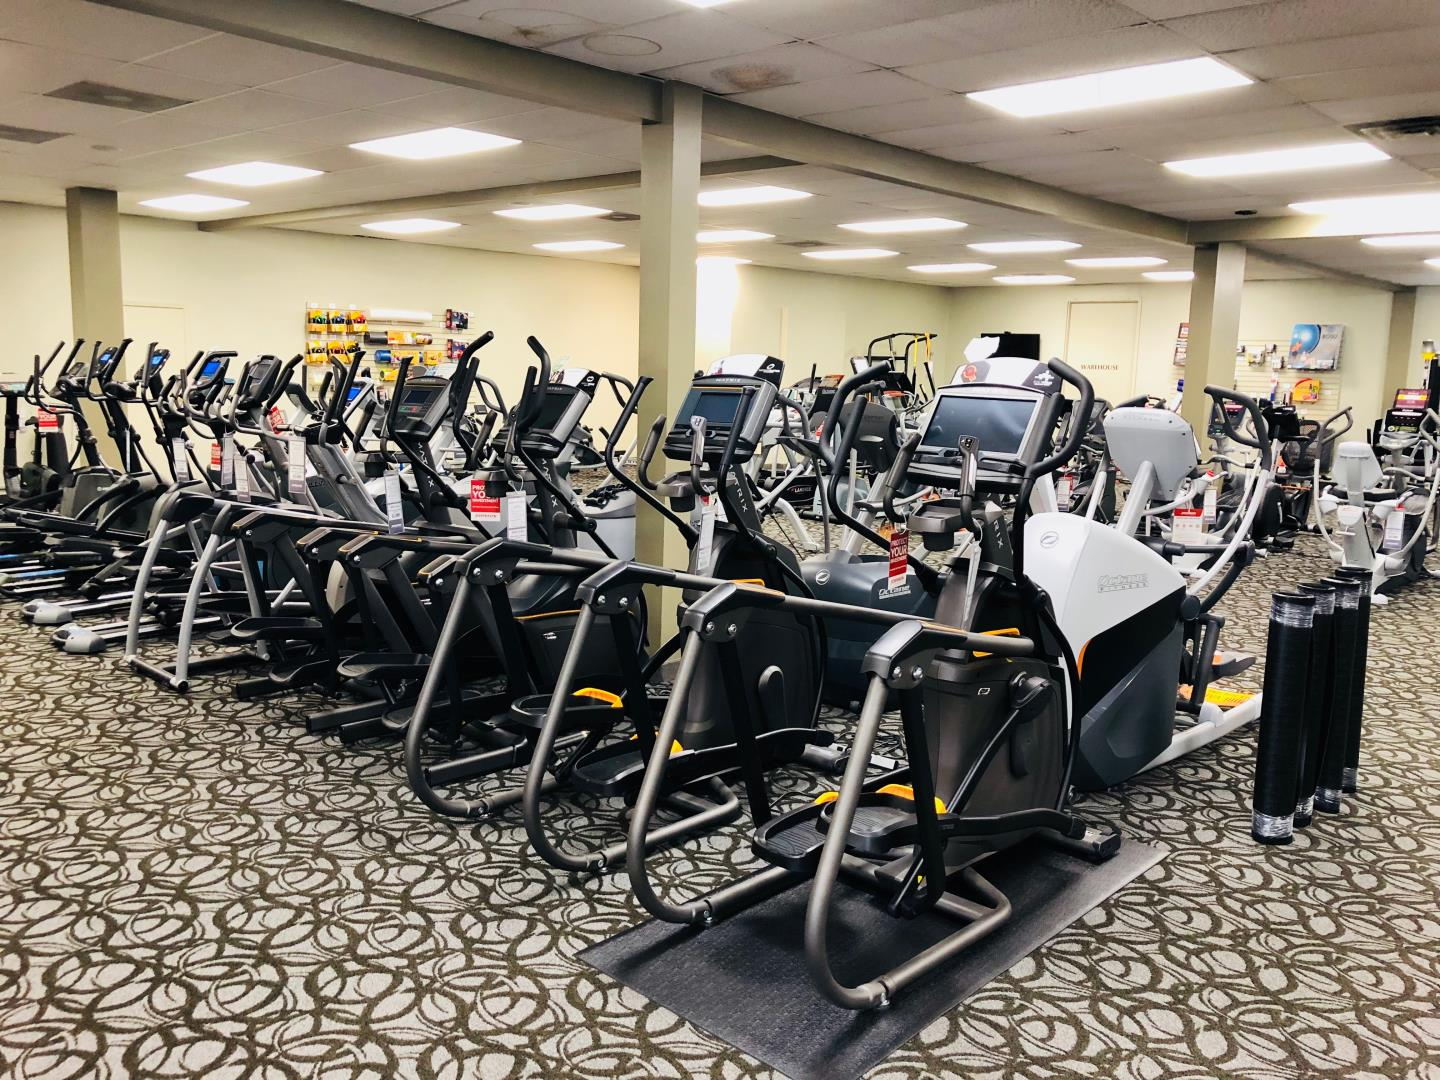 Johnson Fitness & Wellness - St. Louis Park, MN